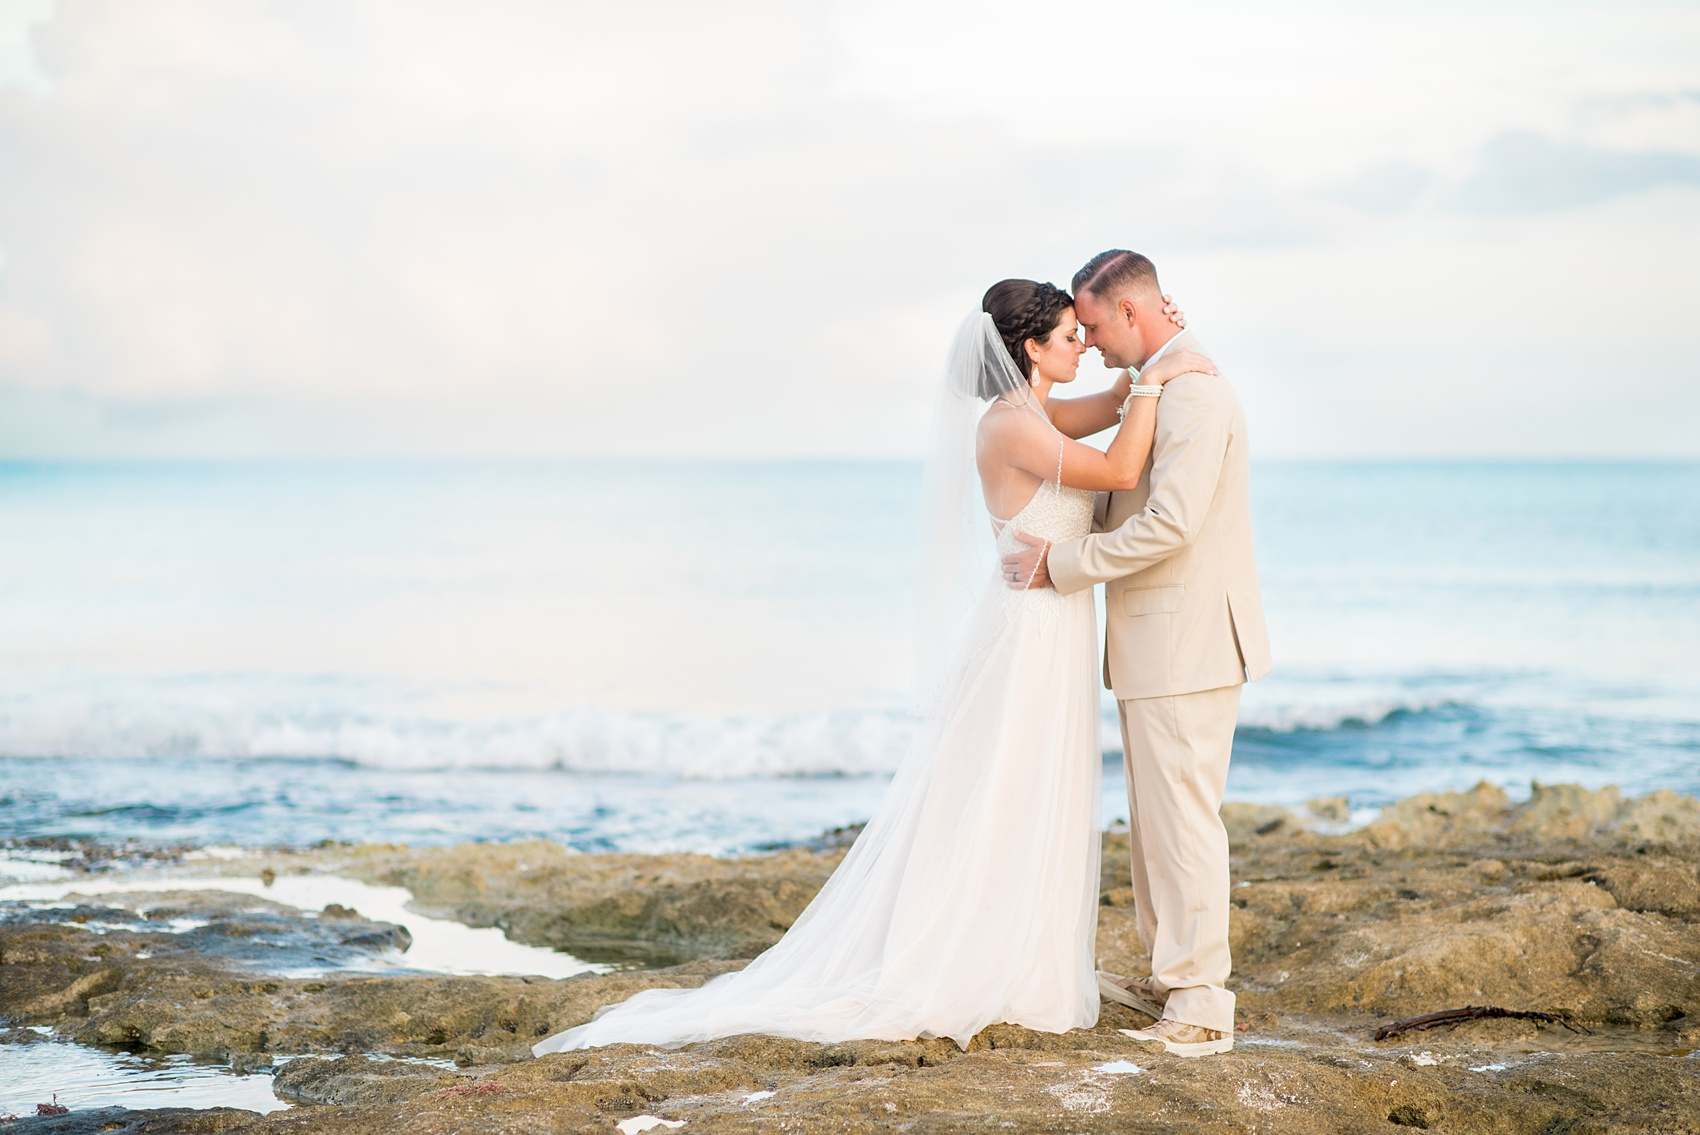 Mikkel Paige Photography photos from a wedding at Grand Paraiso, Mexico, Playa del Carmen Iberostar resort. Picture of the bride and groom on the ocean.